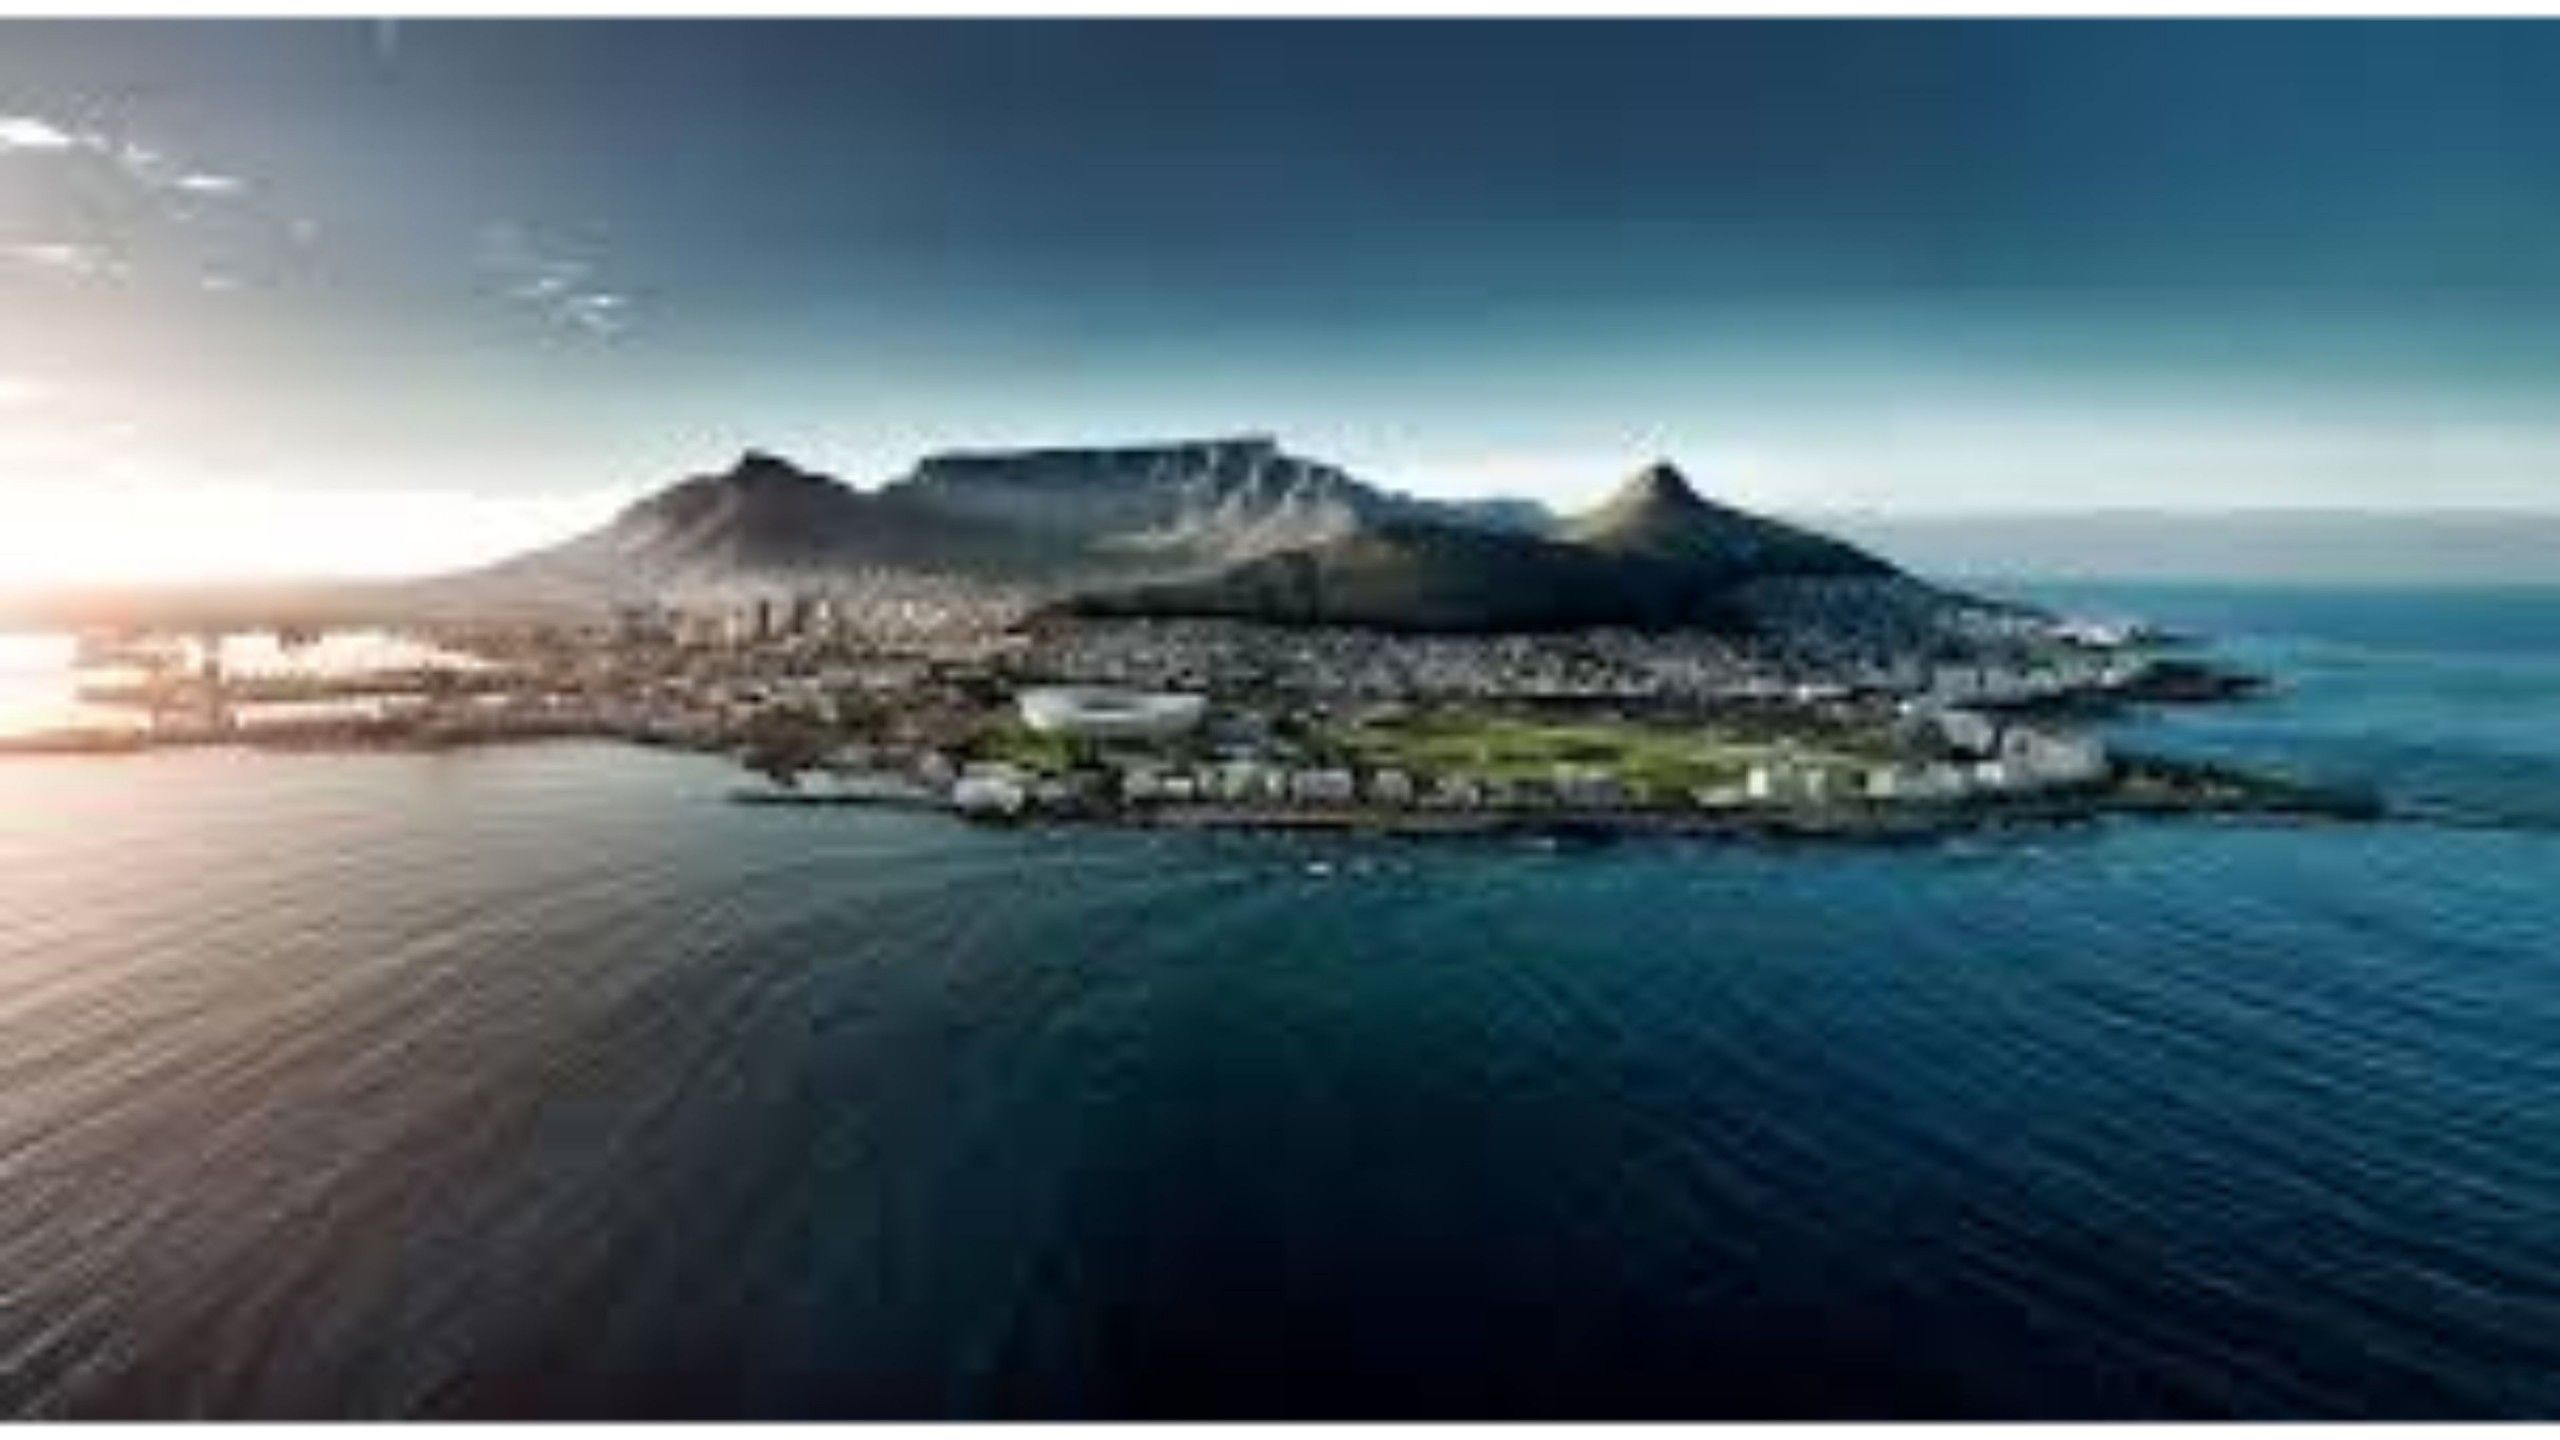 Top 4k Cape Town South Africa Wallpaper Free 4k Wallpaper In